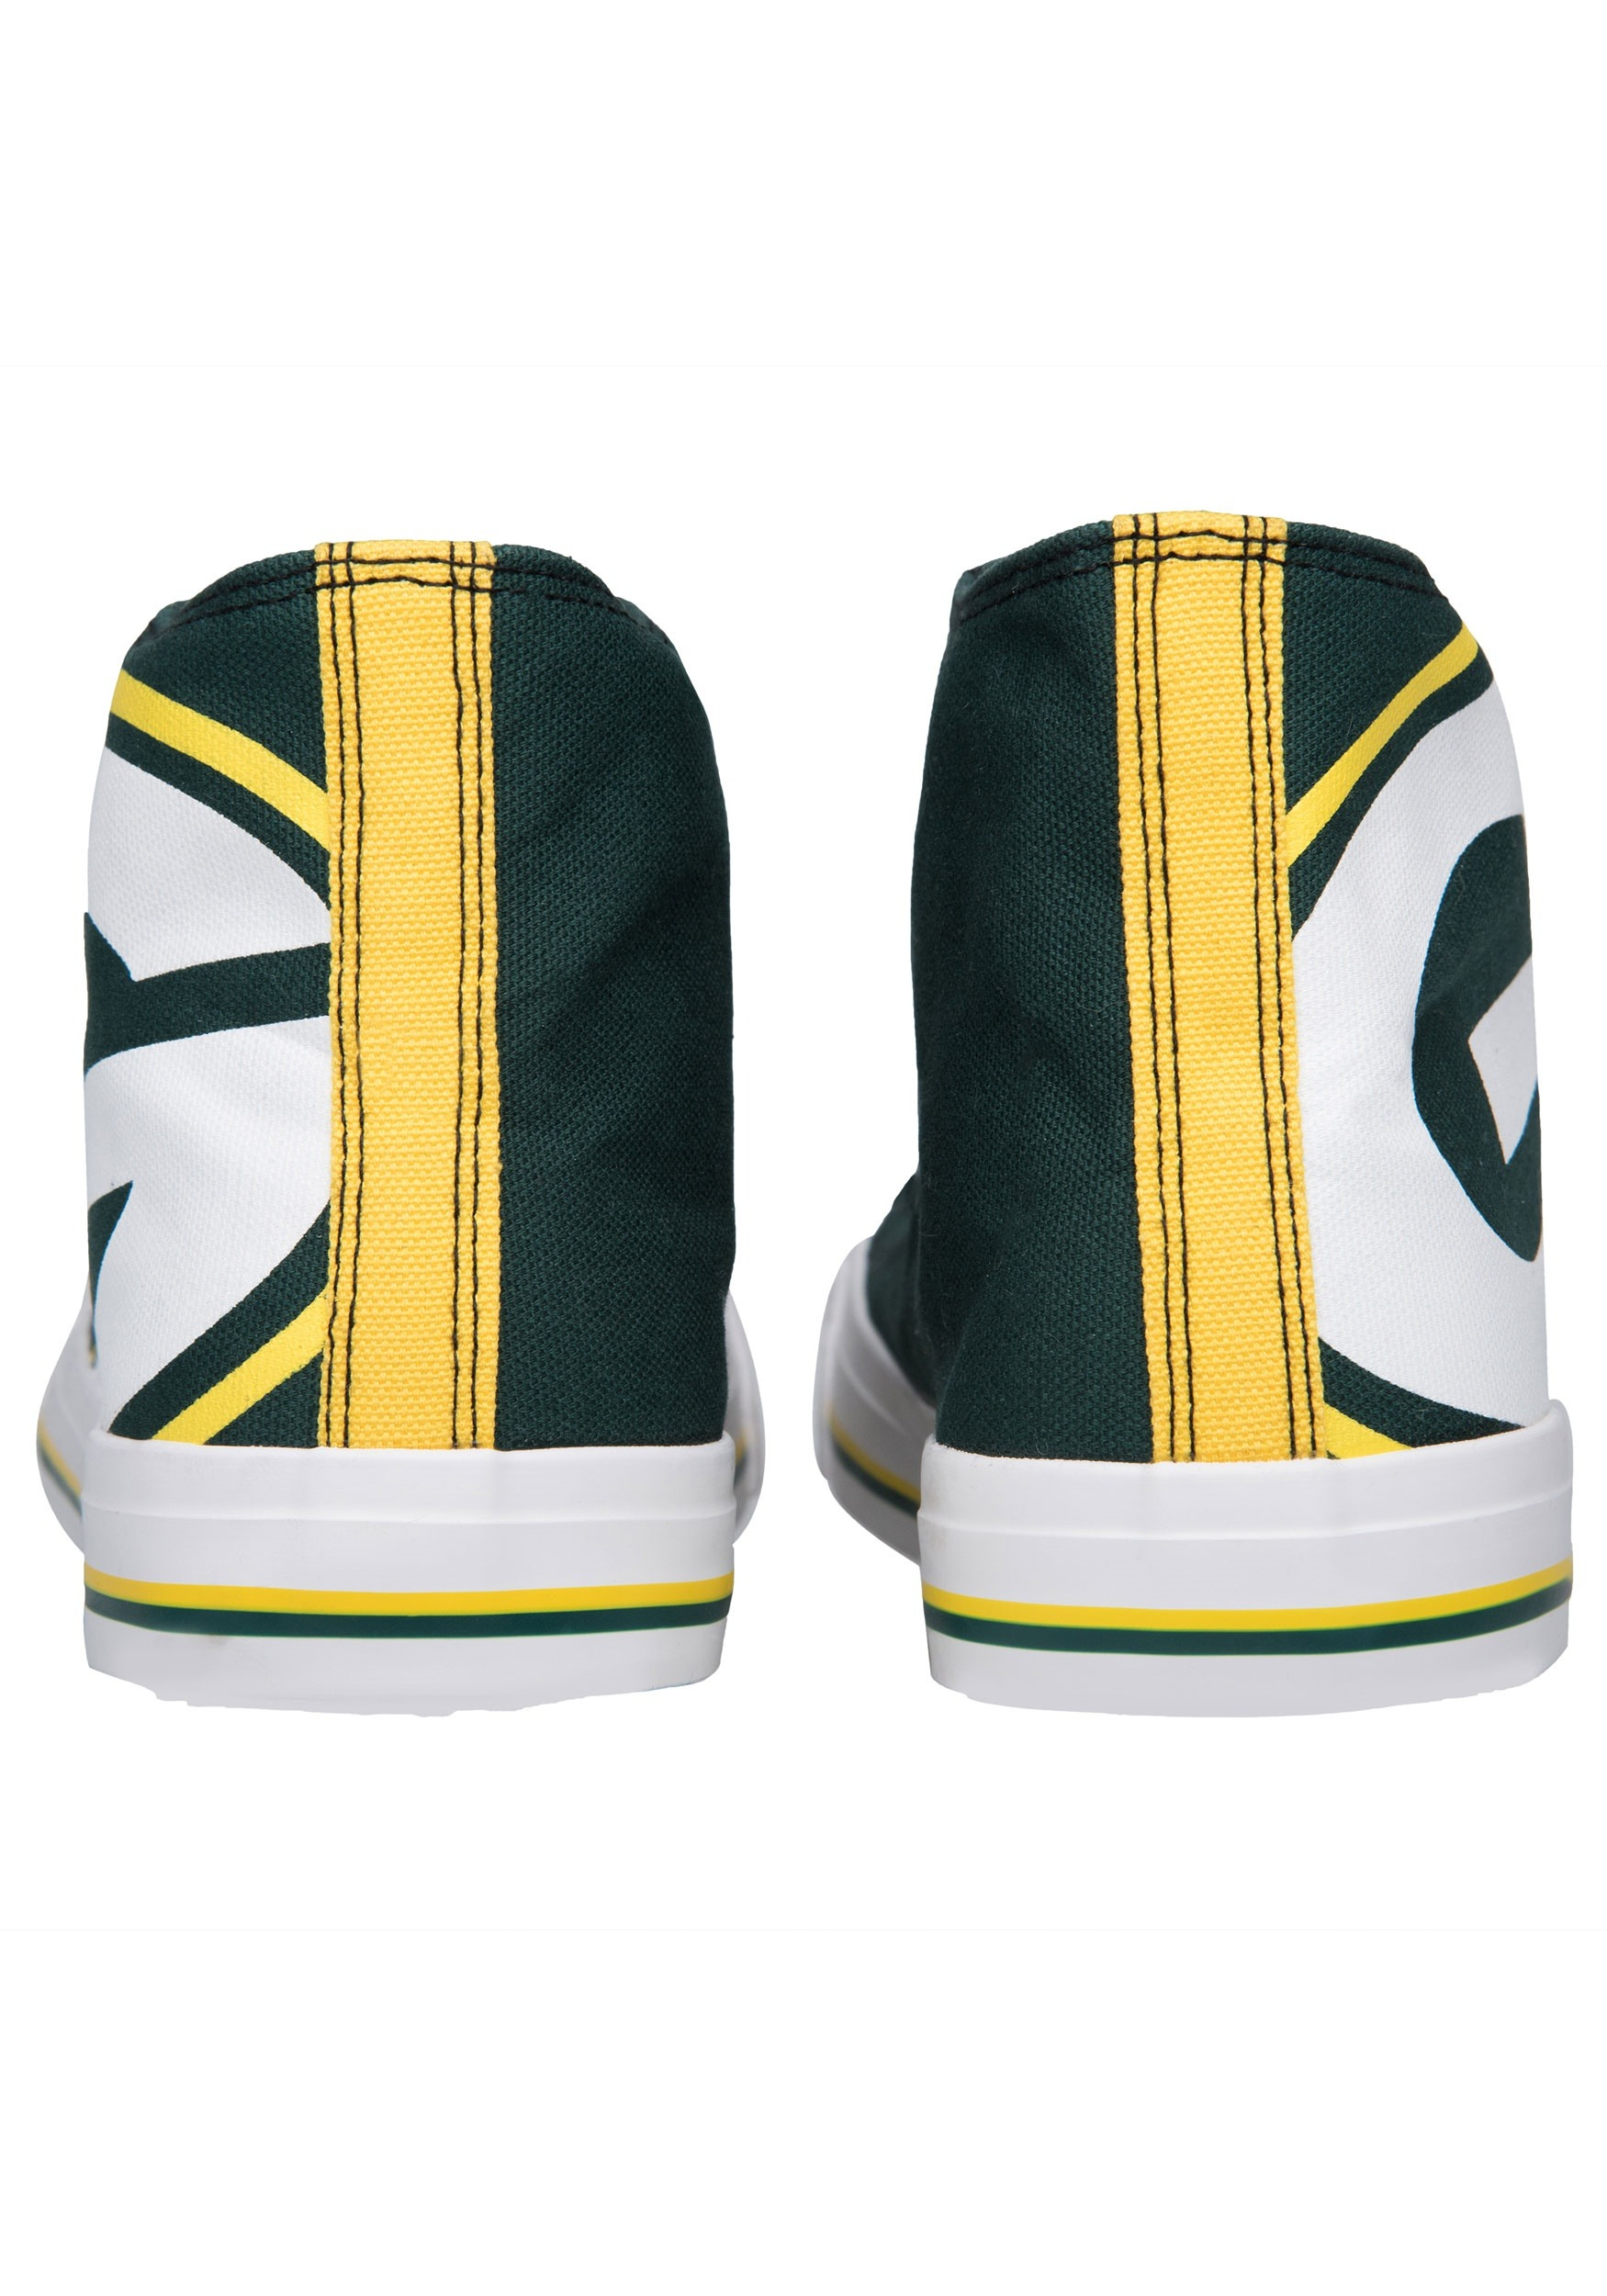 Green Bay Packers High Top Big Logo Canvas Shoes for Men